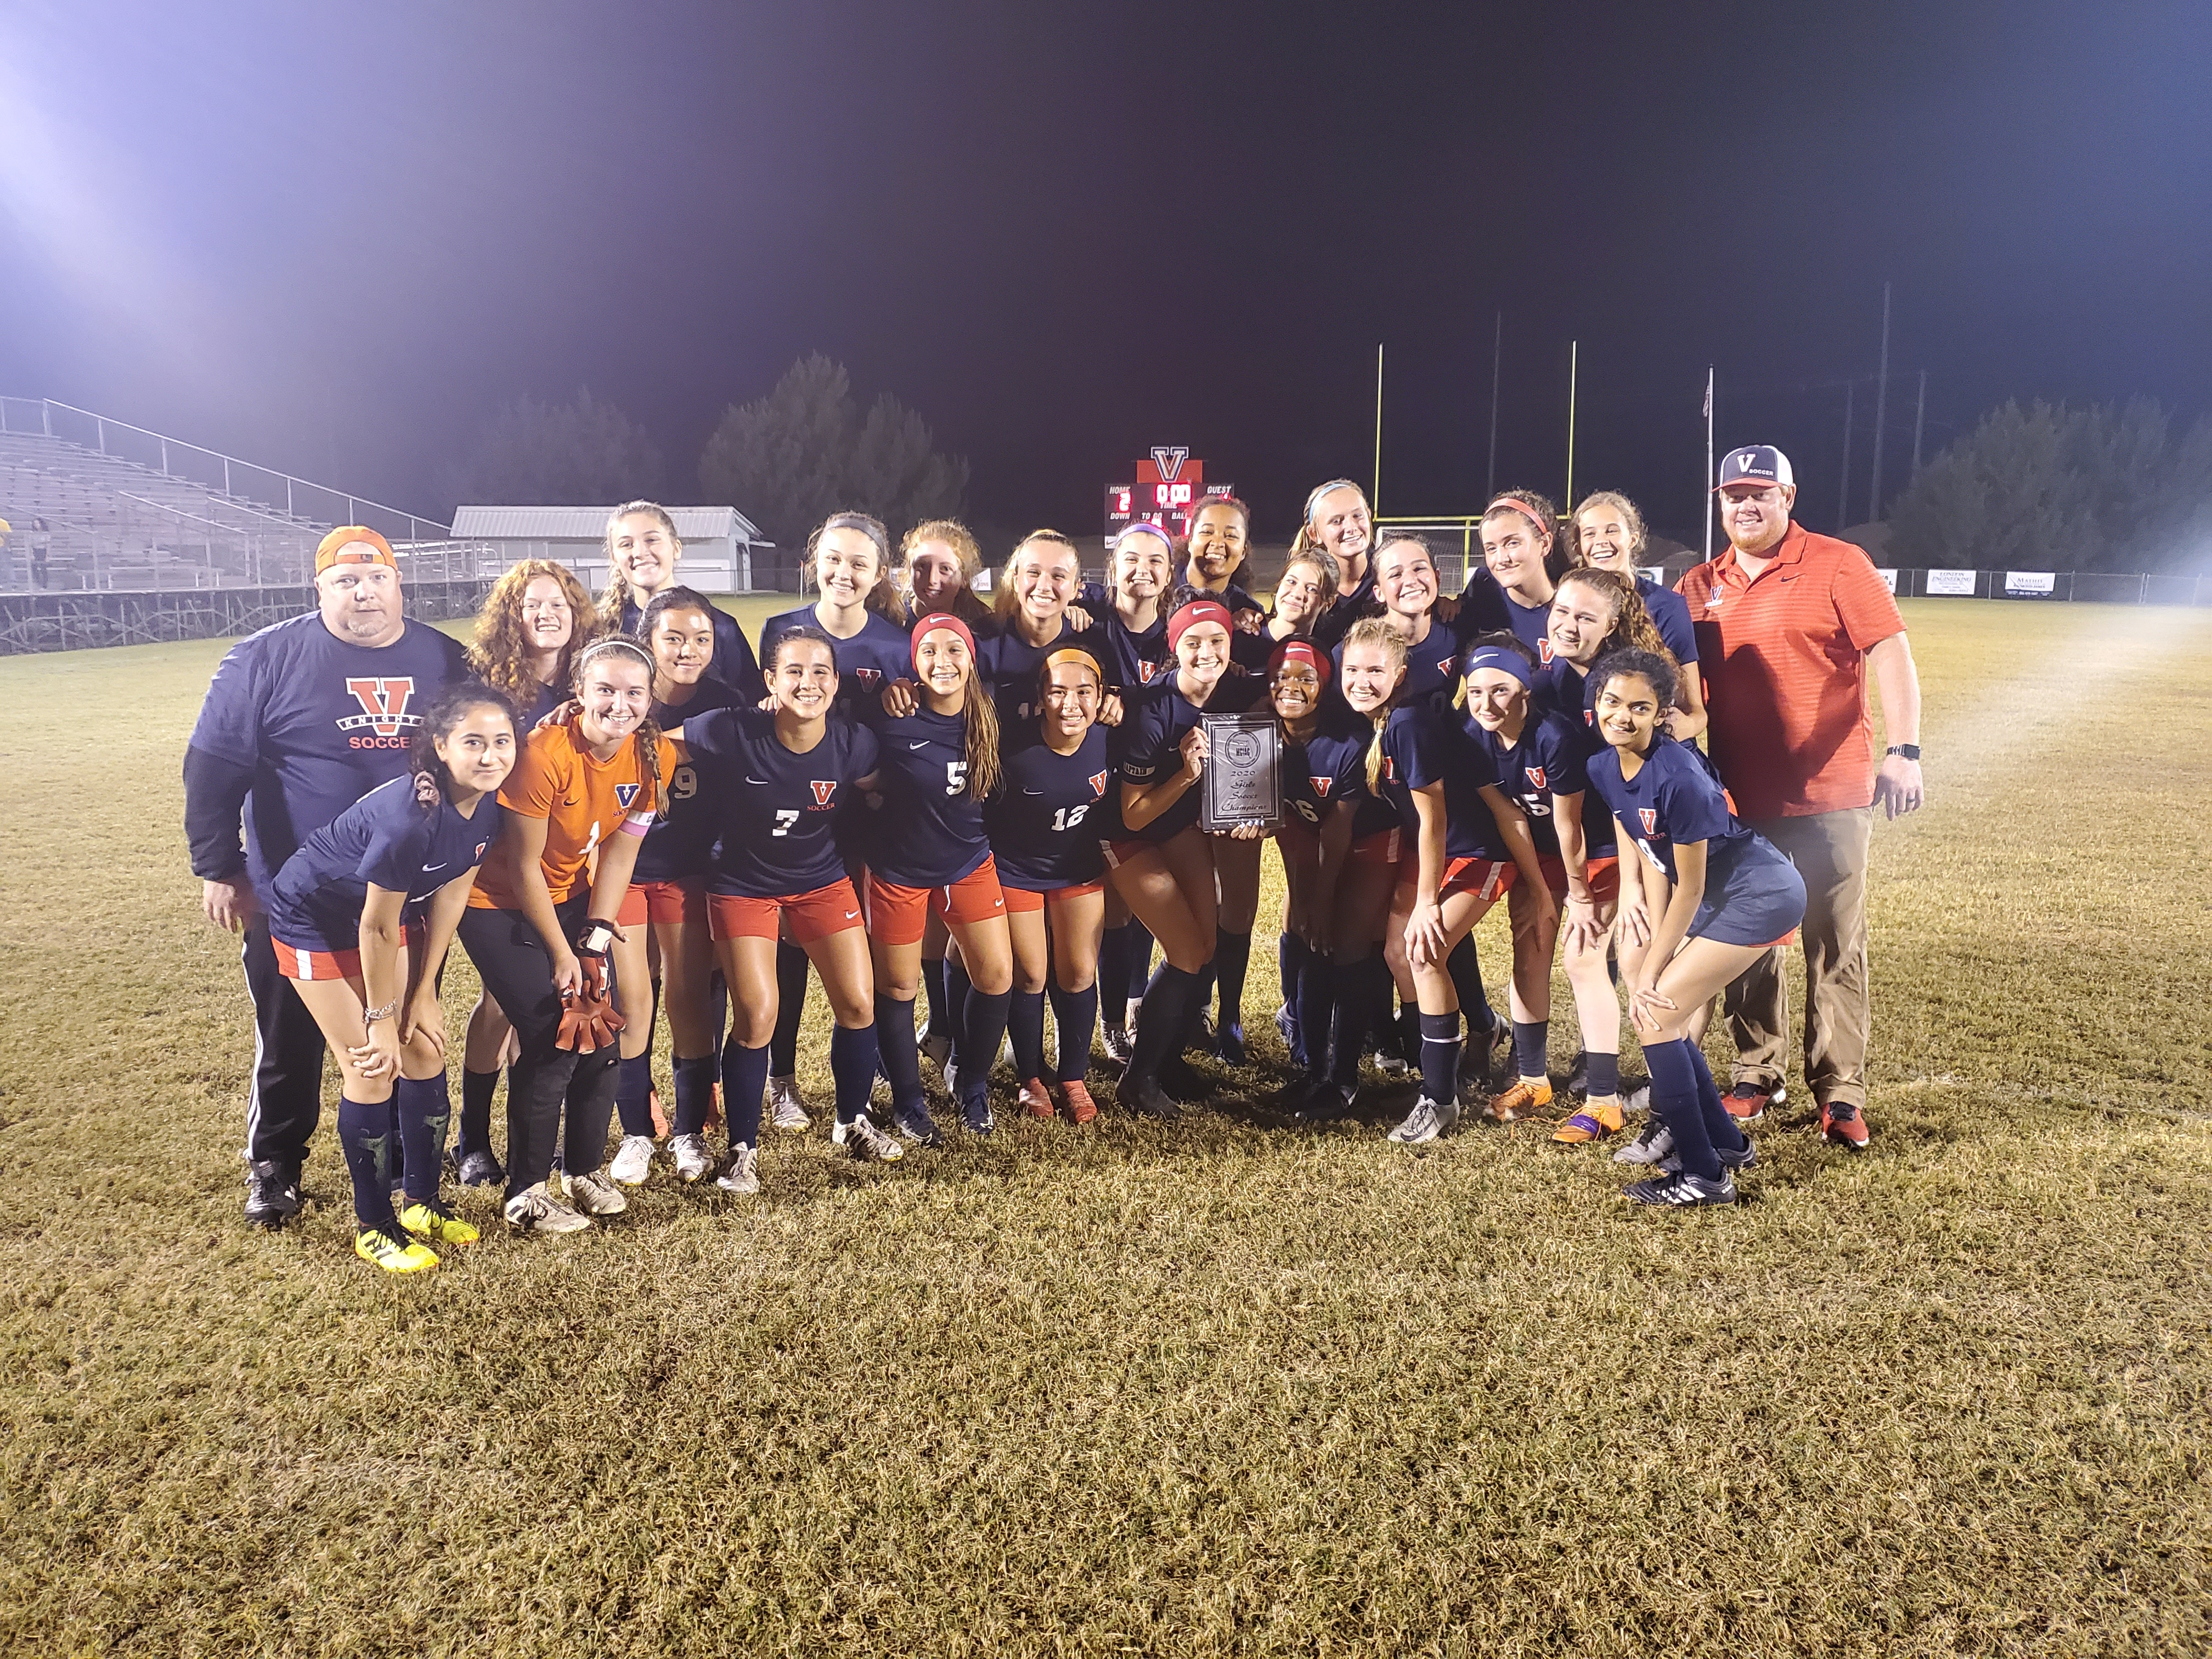 2019-20 Vanguard Highschool Girls Soccer team